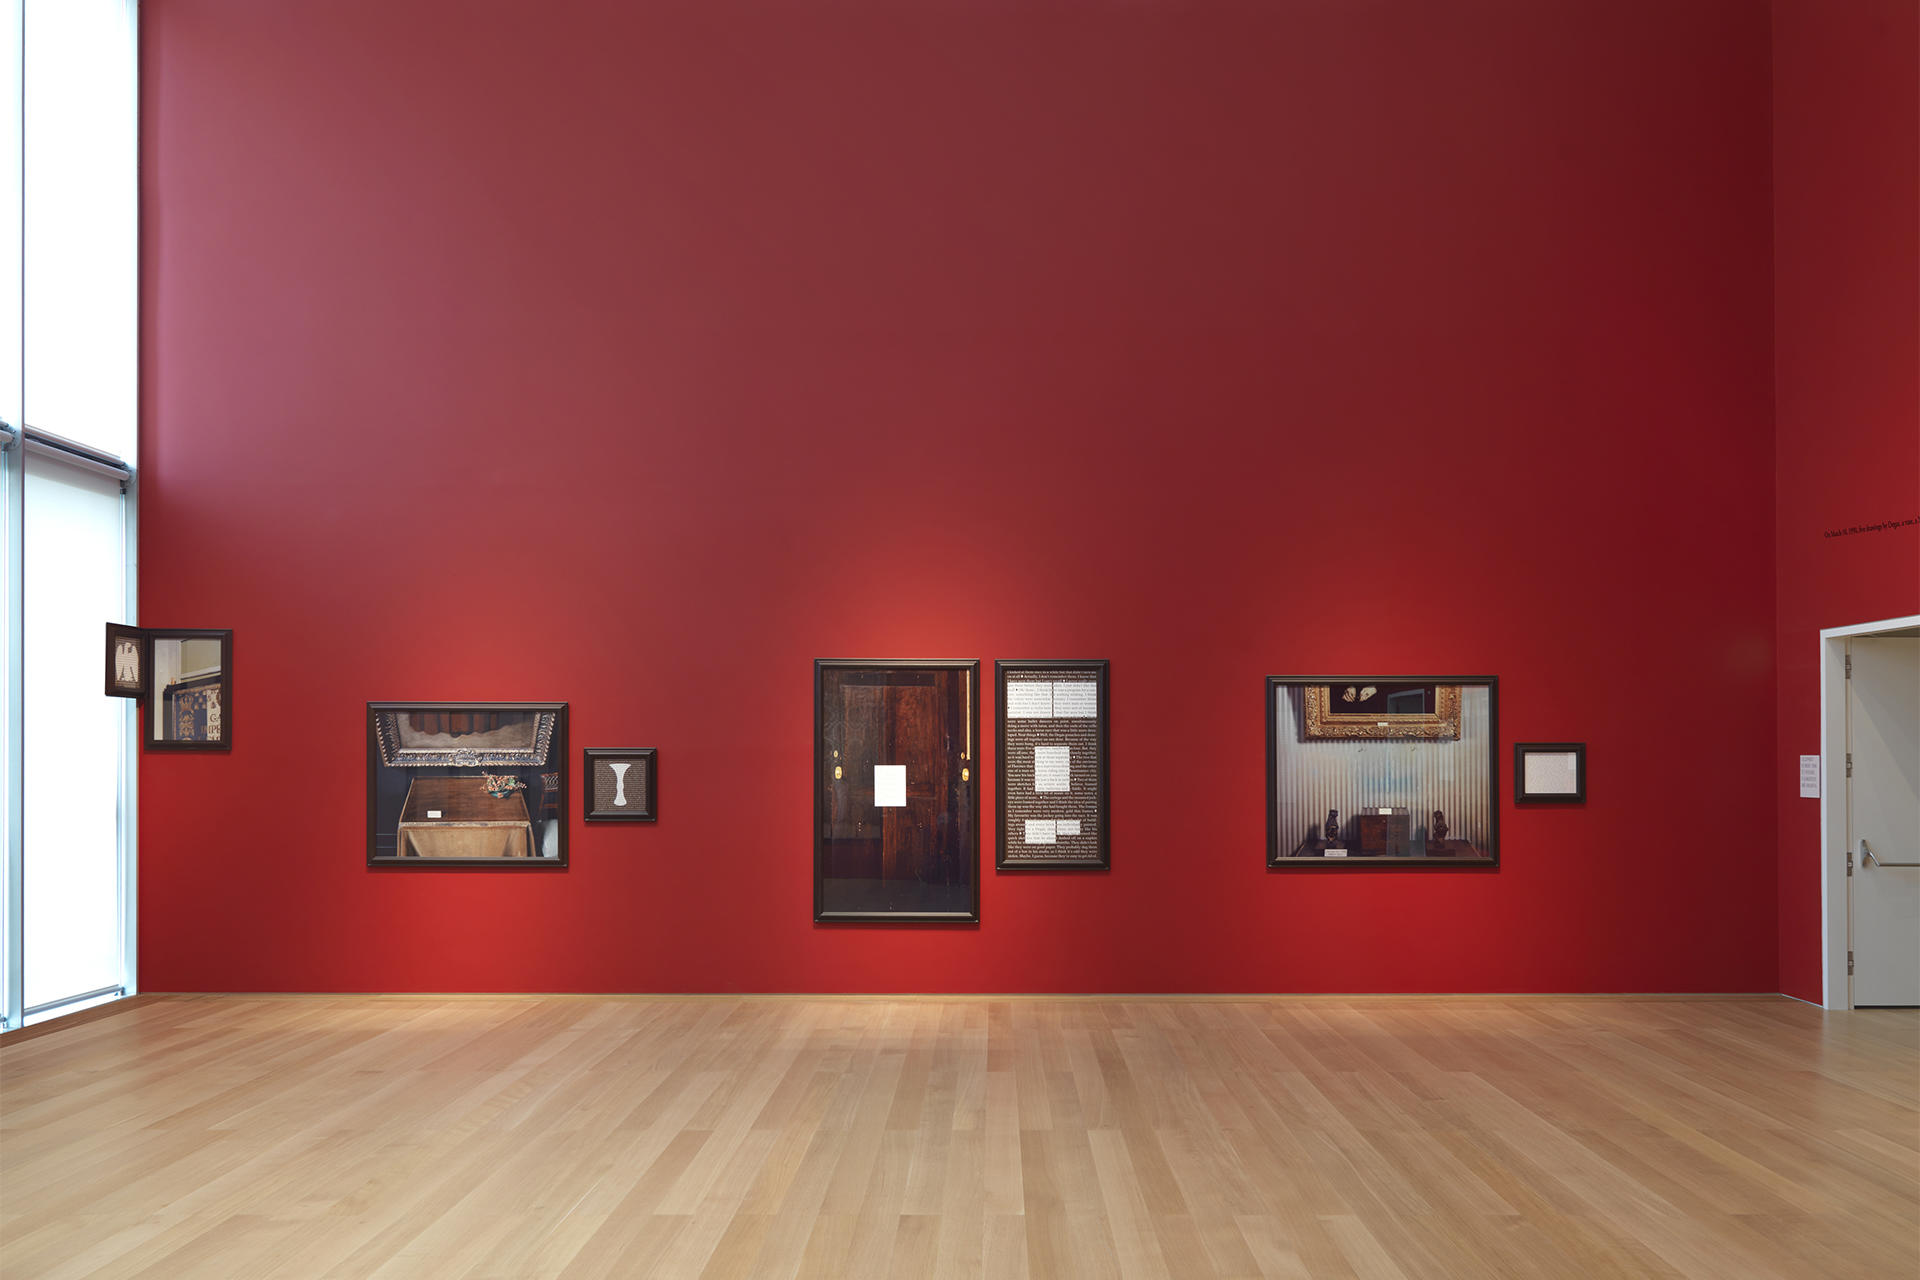 Sophie Calle: Last Seen…, installation view, ©1991 Sophie Calle / Artists Rights Society (ARS), New York / ADAGP, Paris. Courtesy of Sophie Calle, Paula Cooper Gallery, New York, and Isabella Stewart Gardner Museum, Boston.